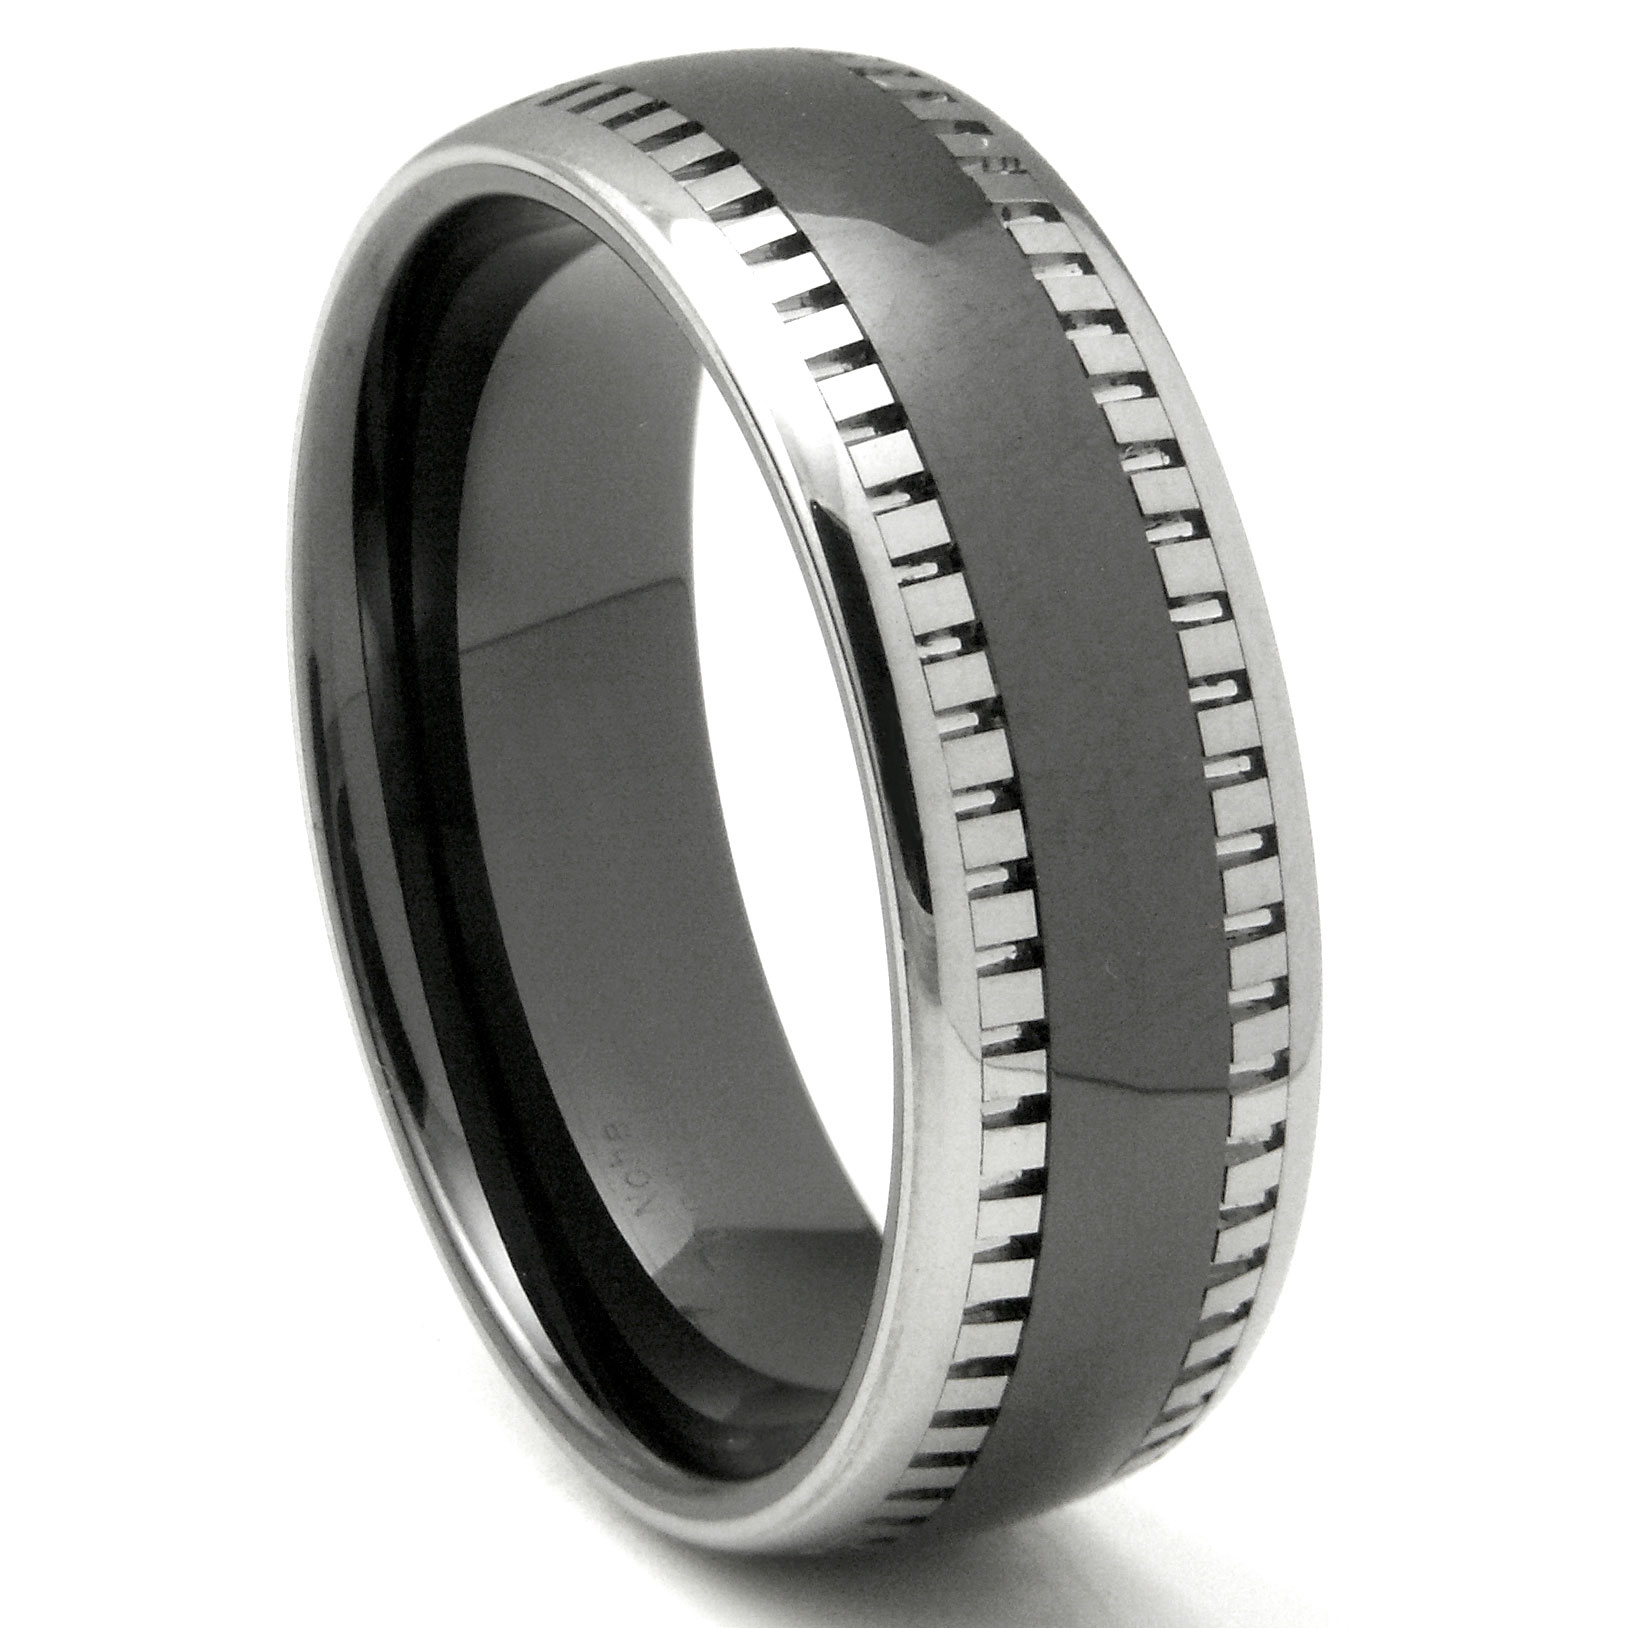 mens carbide images tungsten band diamond round promise xwolkps wedding rings fiber carbon s with of wide ring men inlay